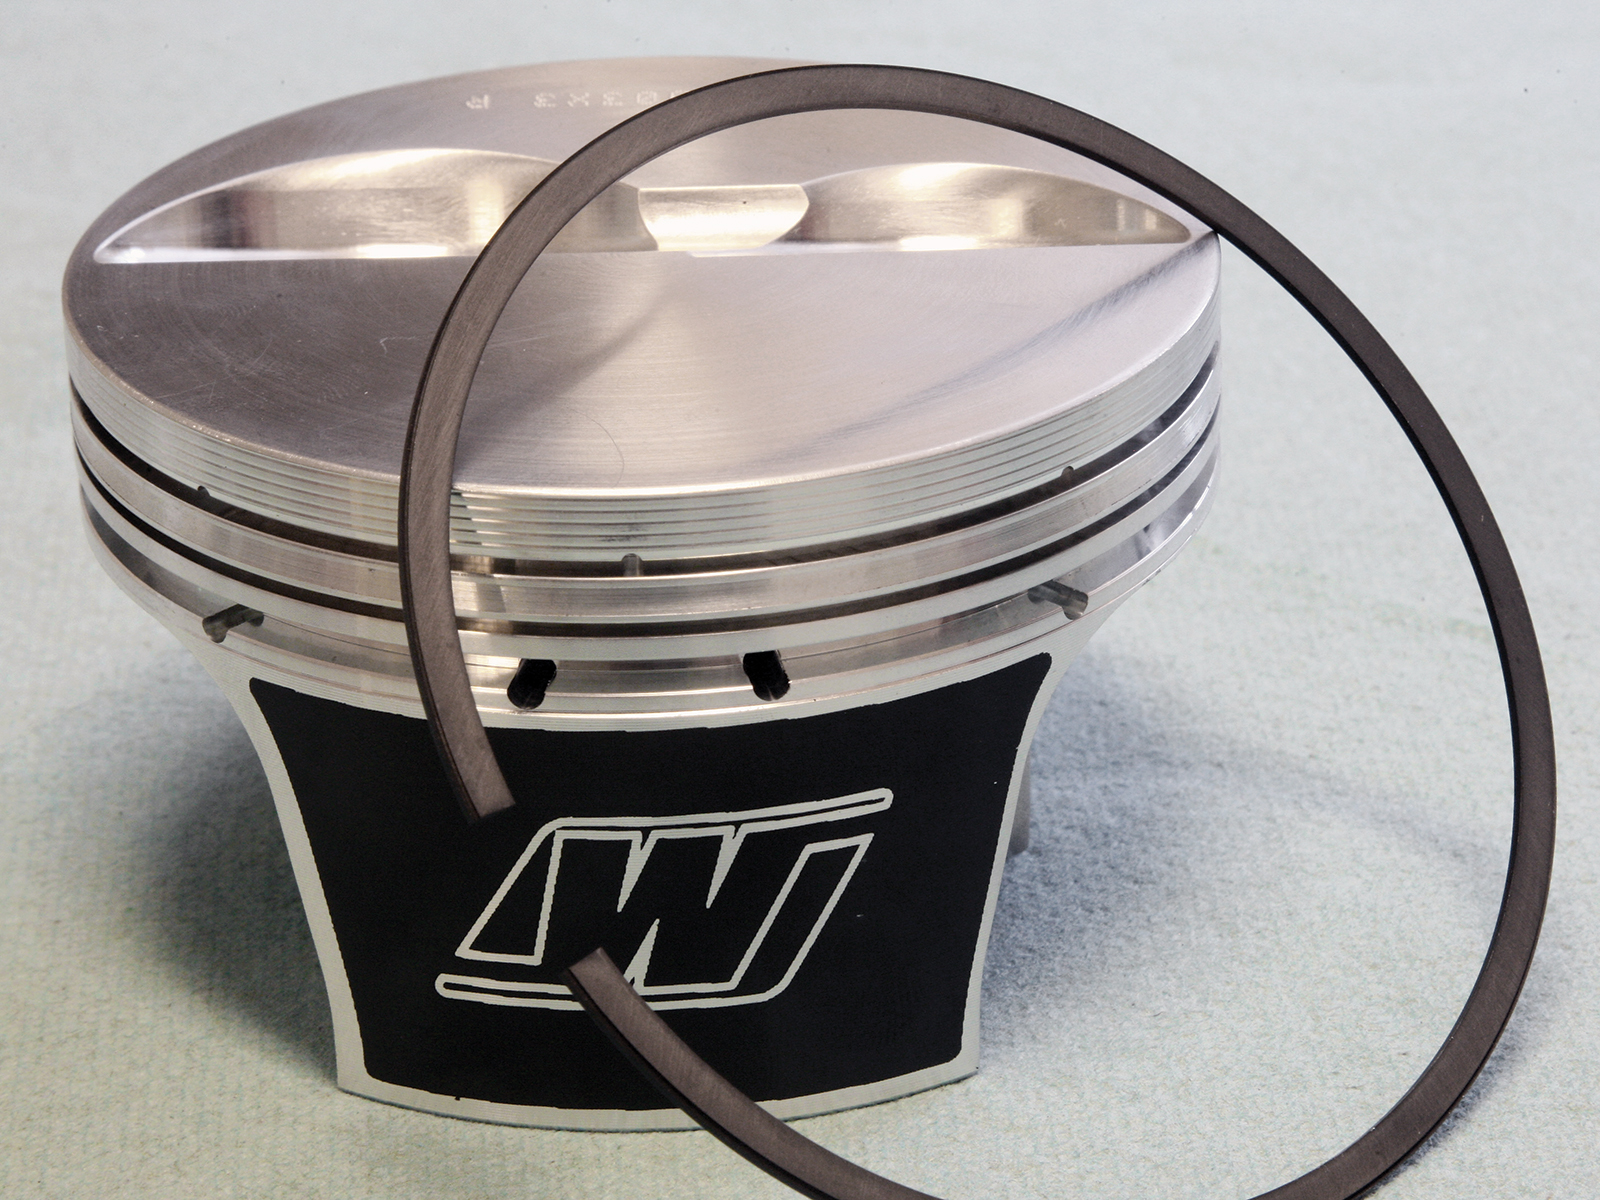 [4] Pistons are Wiseco forged aluminum flat-tops. Wiseco calls these its Max 23 pistons, and they feature a strutted slipper skirt and short 2.250 wrist pin for excellent strength with light weight.